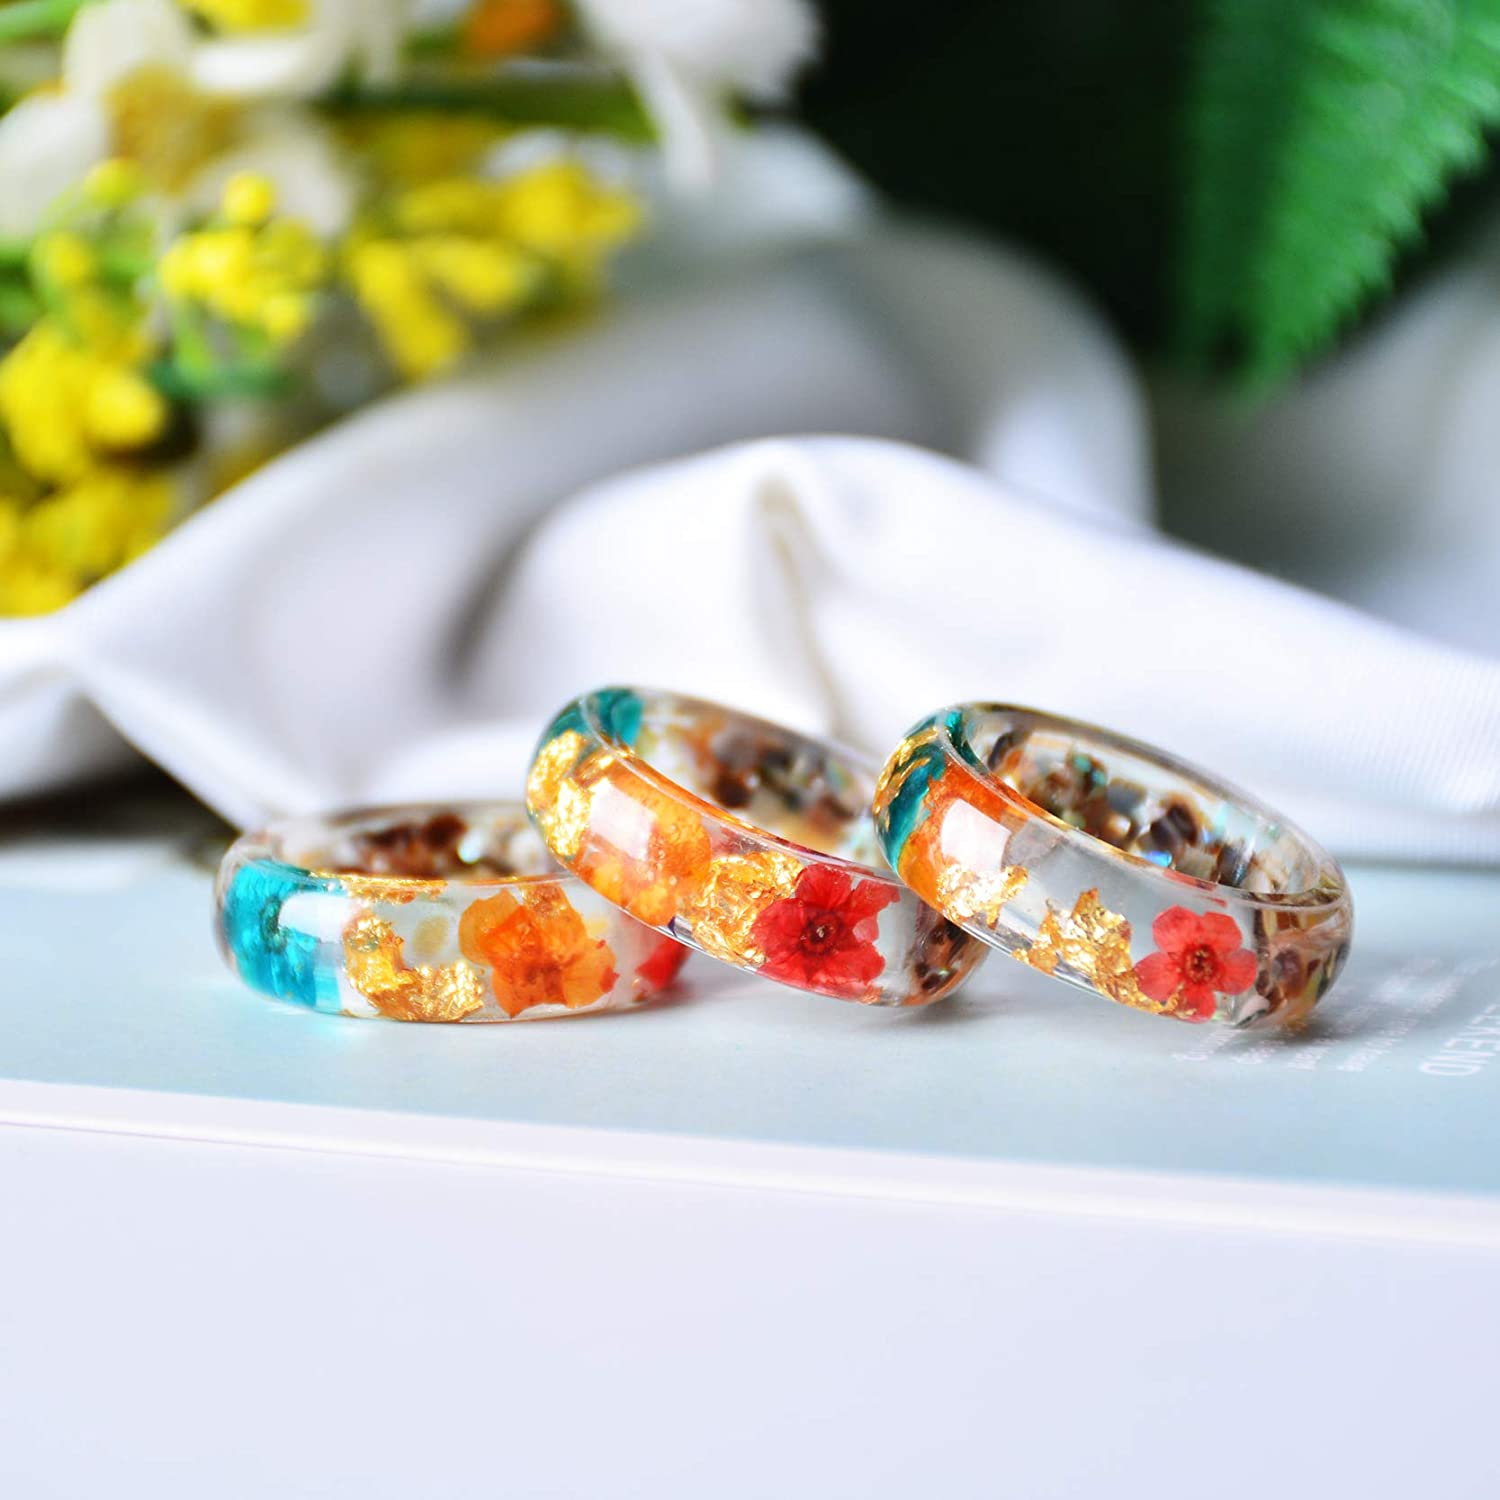 NDJEWELRY Resin Ring Unique Handmade Plastic Resin Ring with Turquoise and Gold Foil Insided Ocean Blue Crystal Ring Wedding Band Cocktail Party Ring